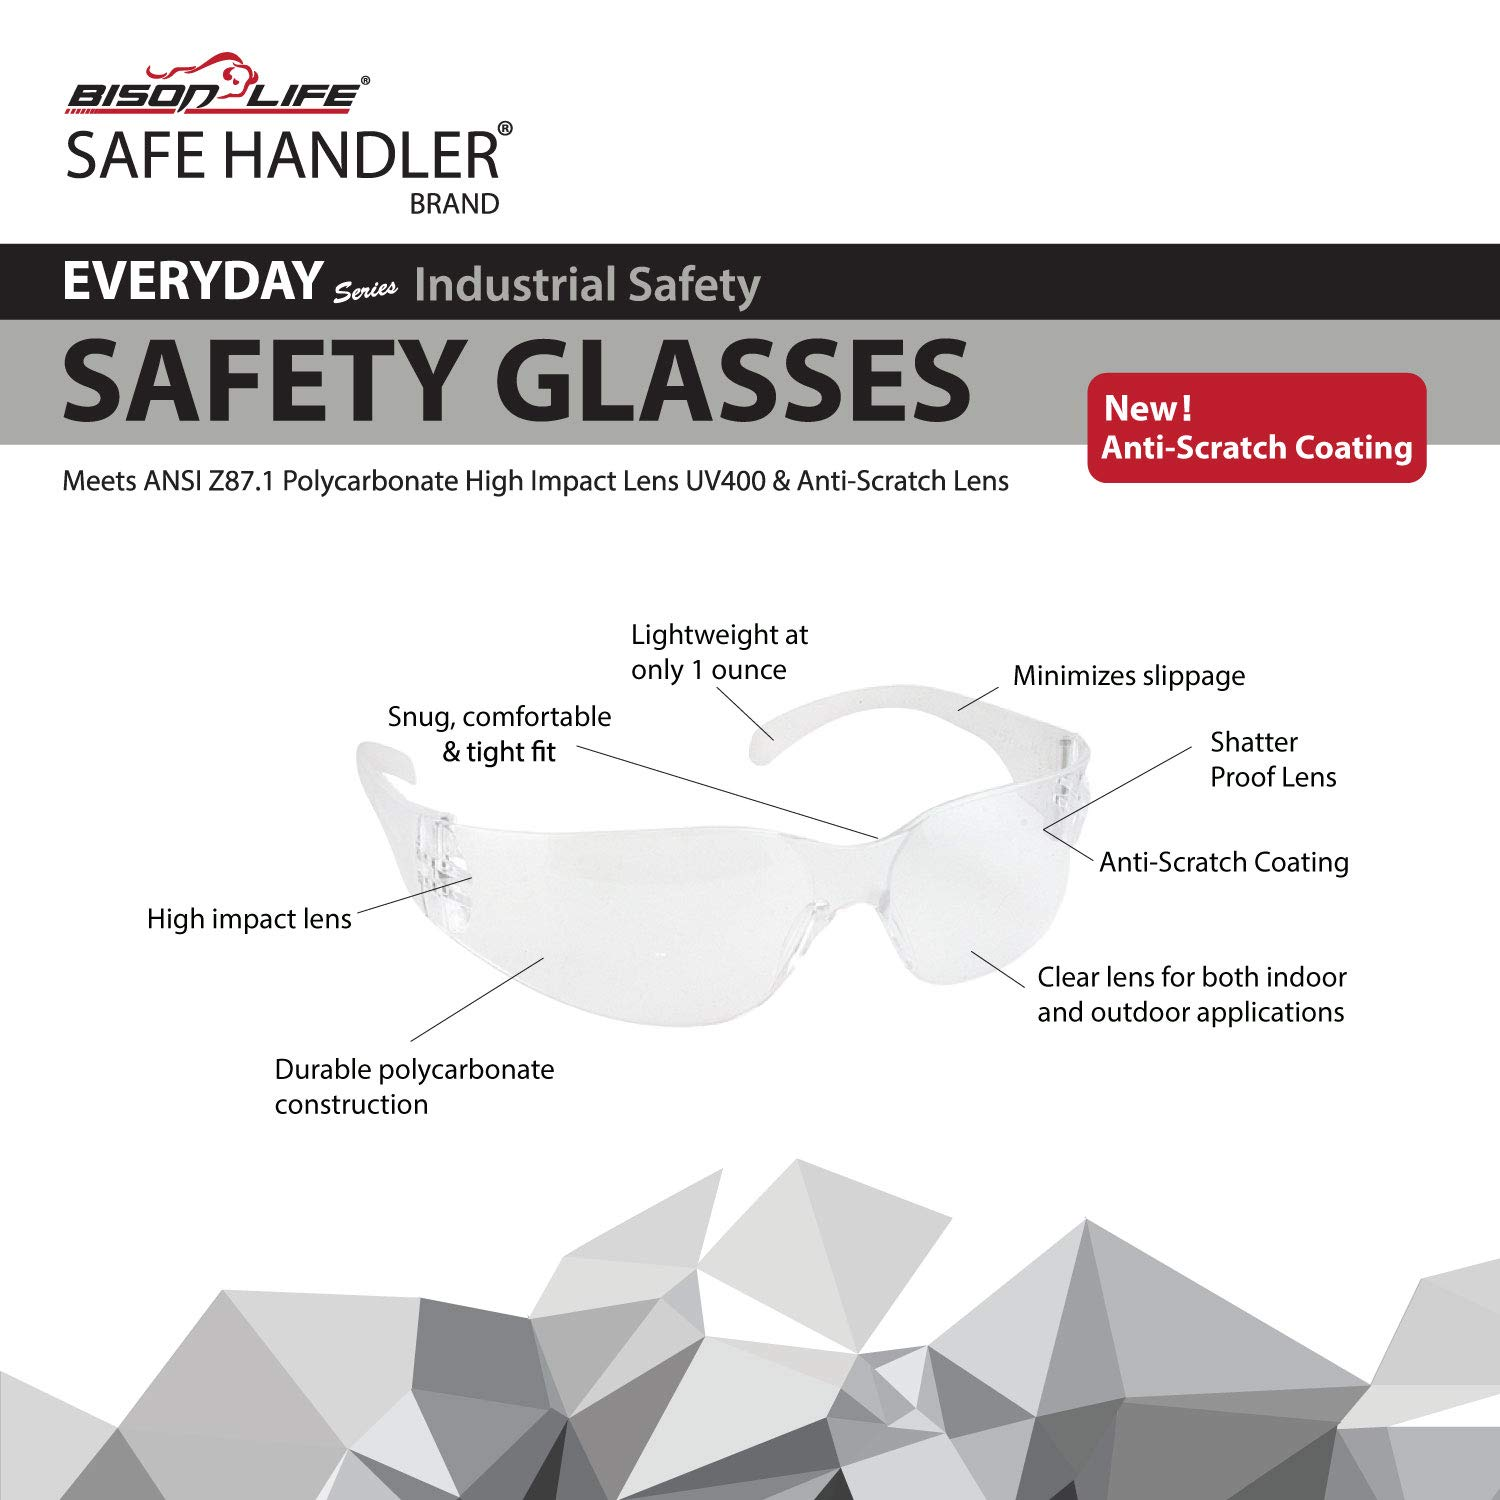 BISON LIFE Safety Glasses | One Size, Clear Protective Polycarbonate Lens, Clear Temple, 12 per Box (Case of 12 boxes, 144 pairs total) by BISON LIFE (Image #8)